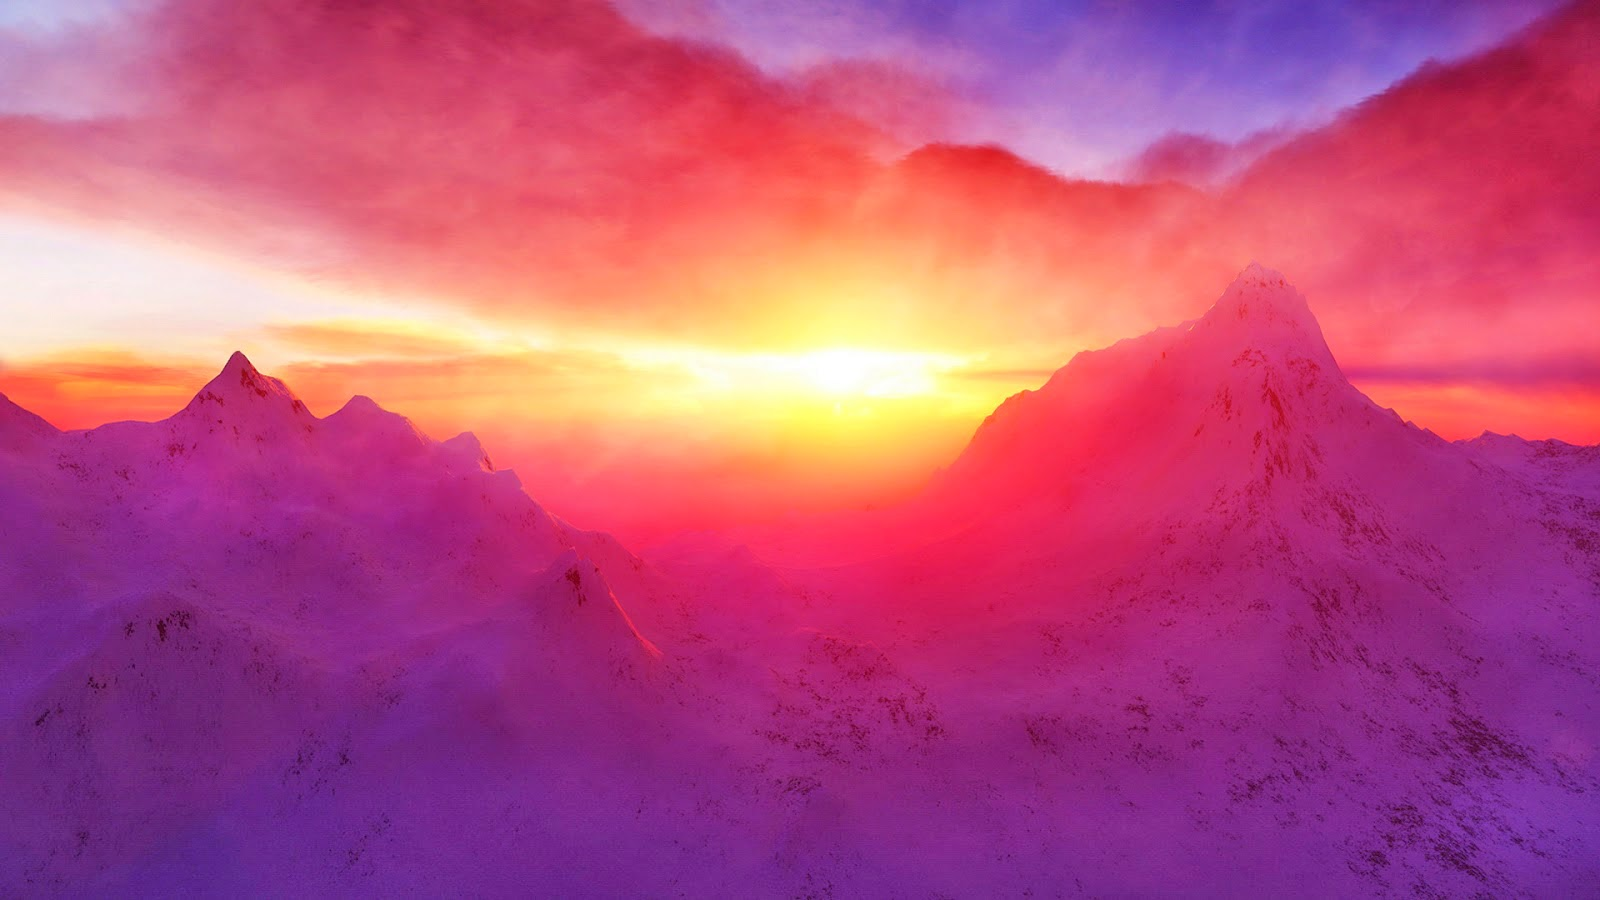 What does band name Pink Mountaintops mean - sunset-snowy-mountains-wallpaper